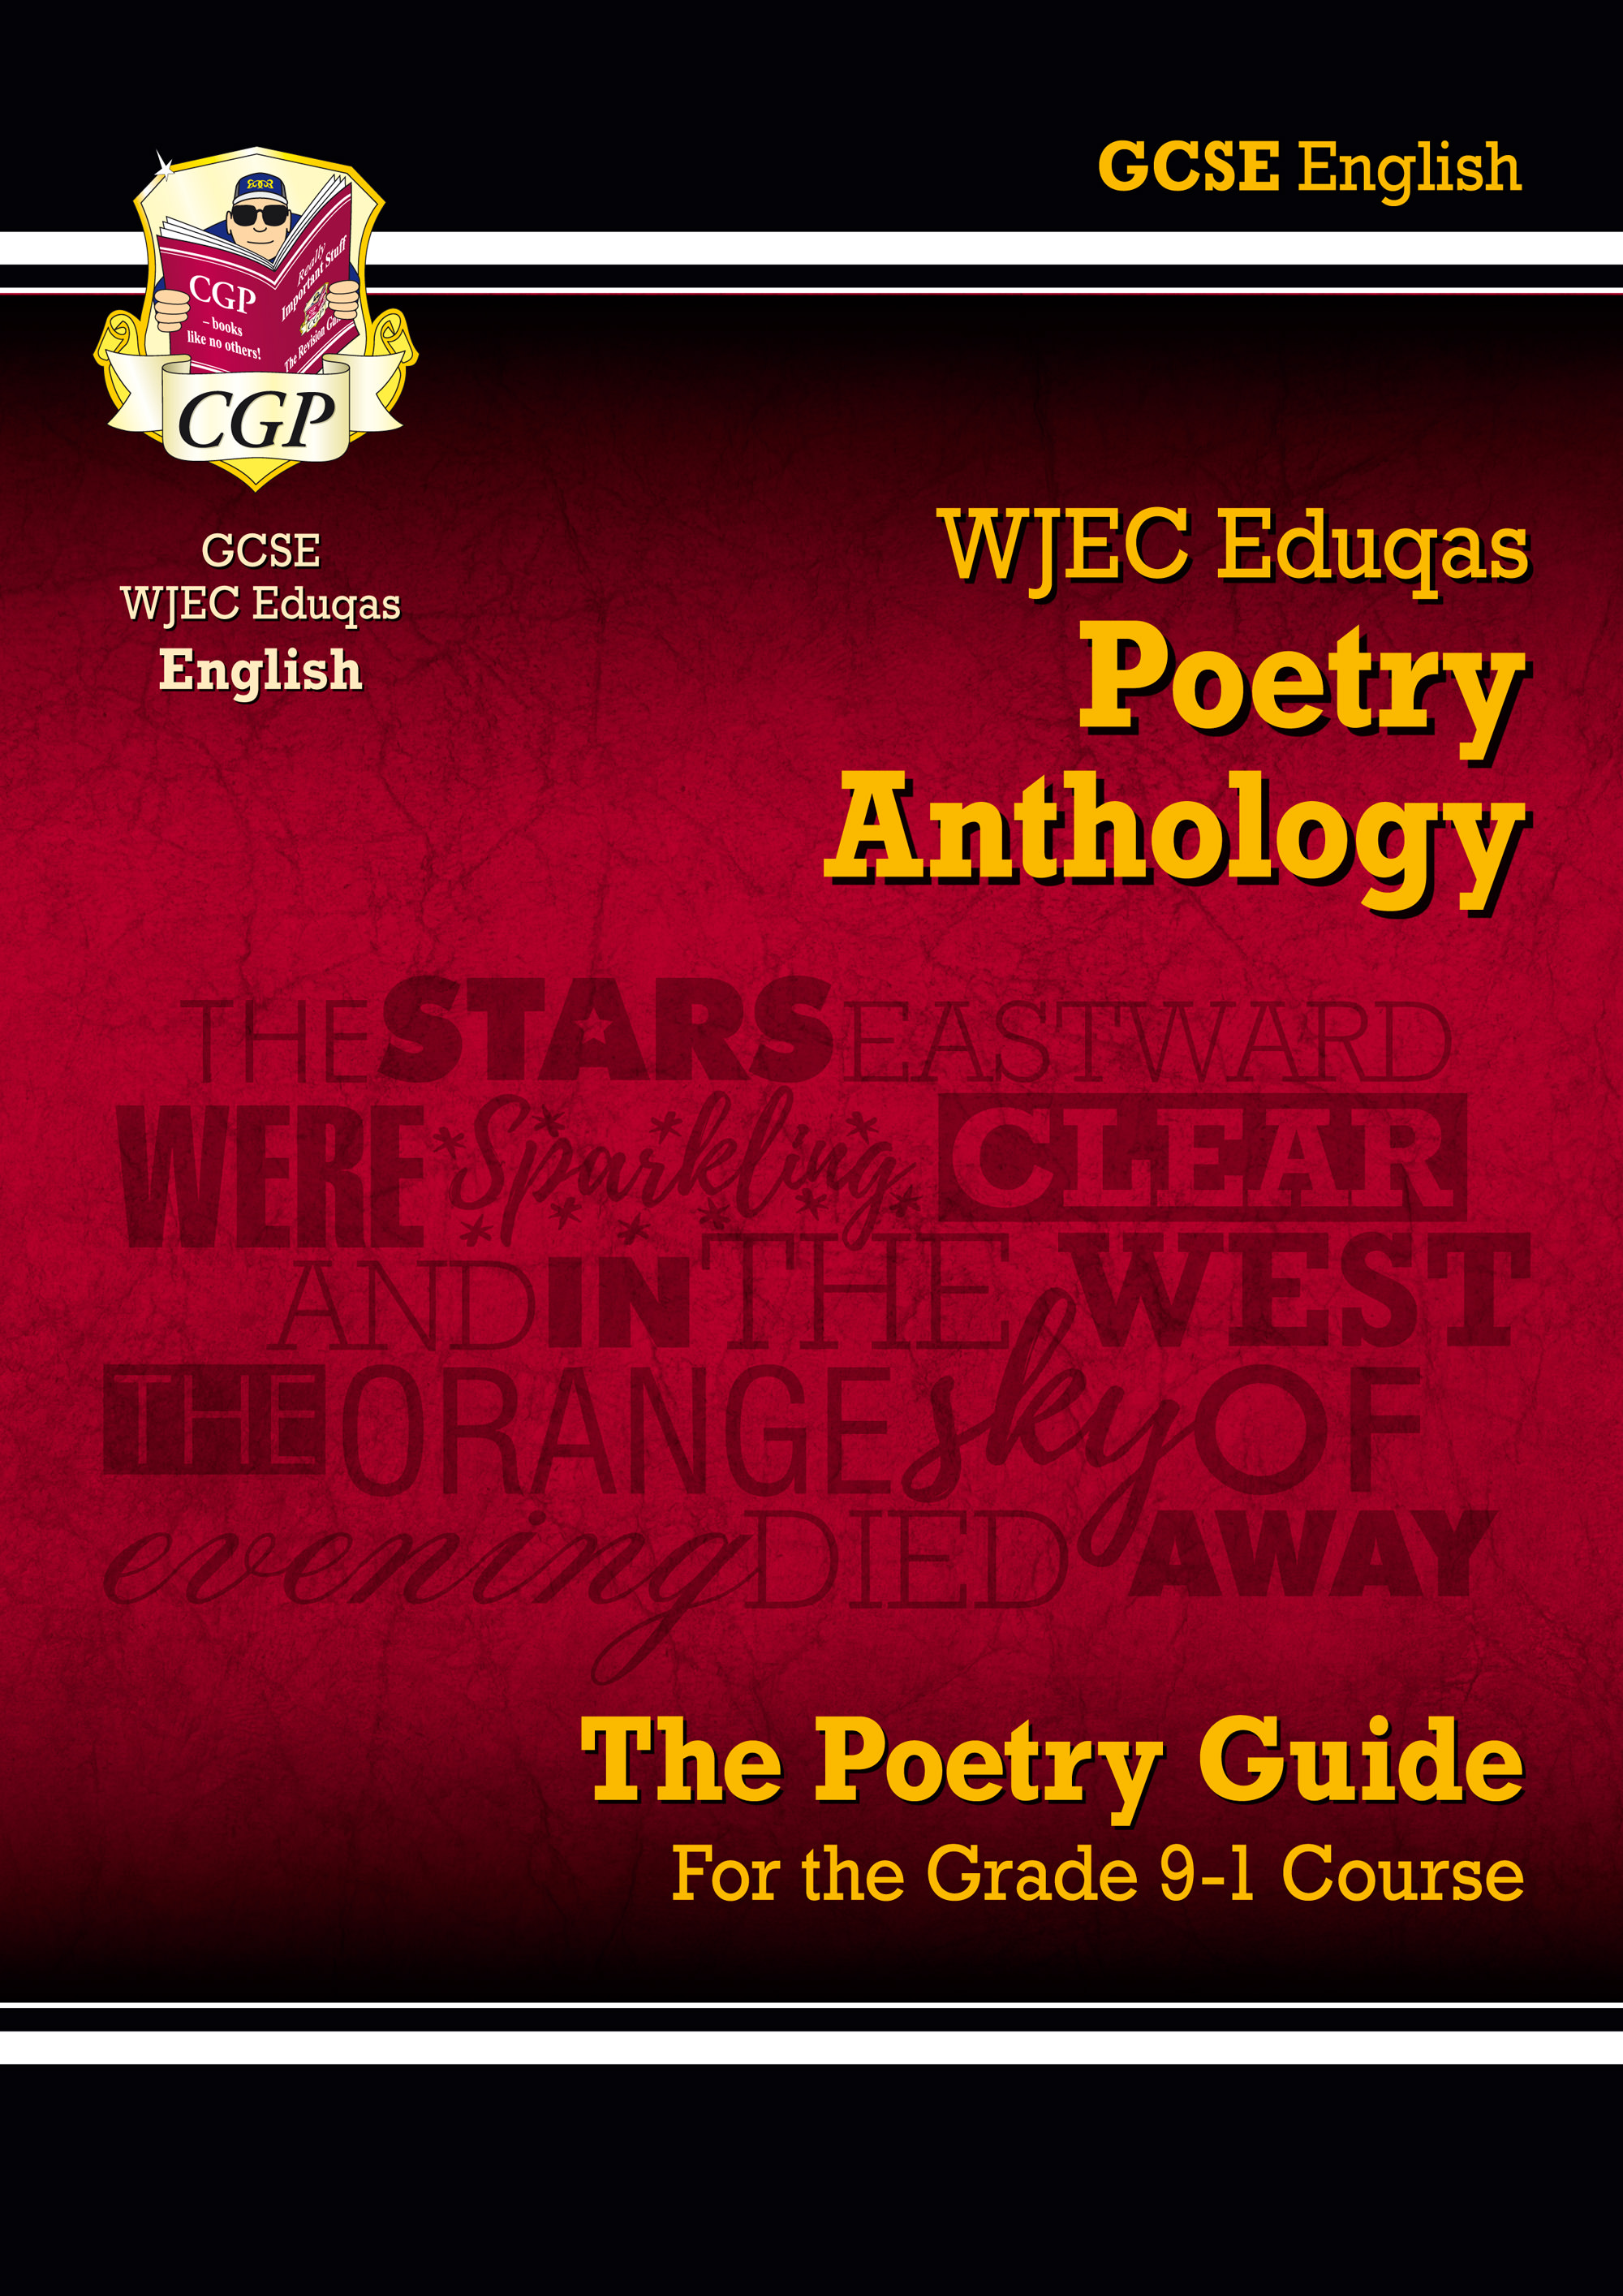 AWHR41 - GCSE English Literature WJEC Eduqas Anthology Poetry Guide - for the Grade 9-1 Course